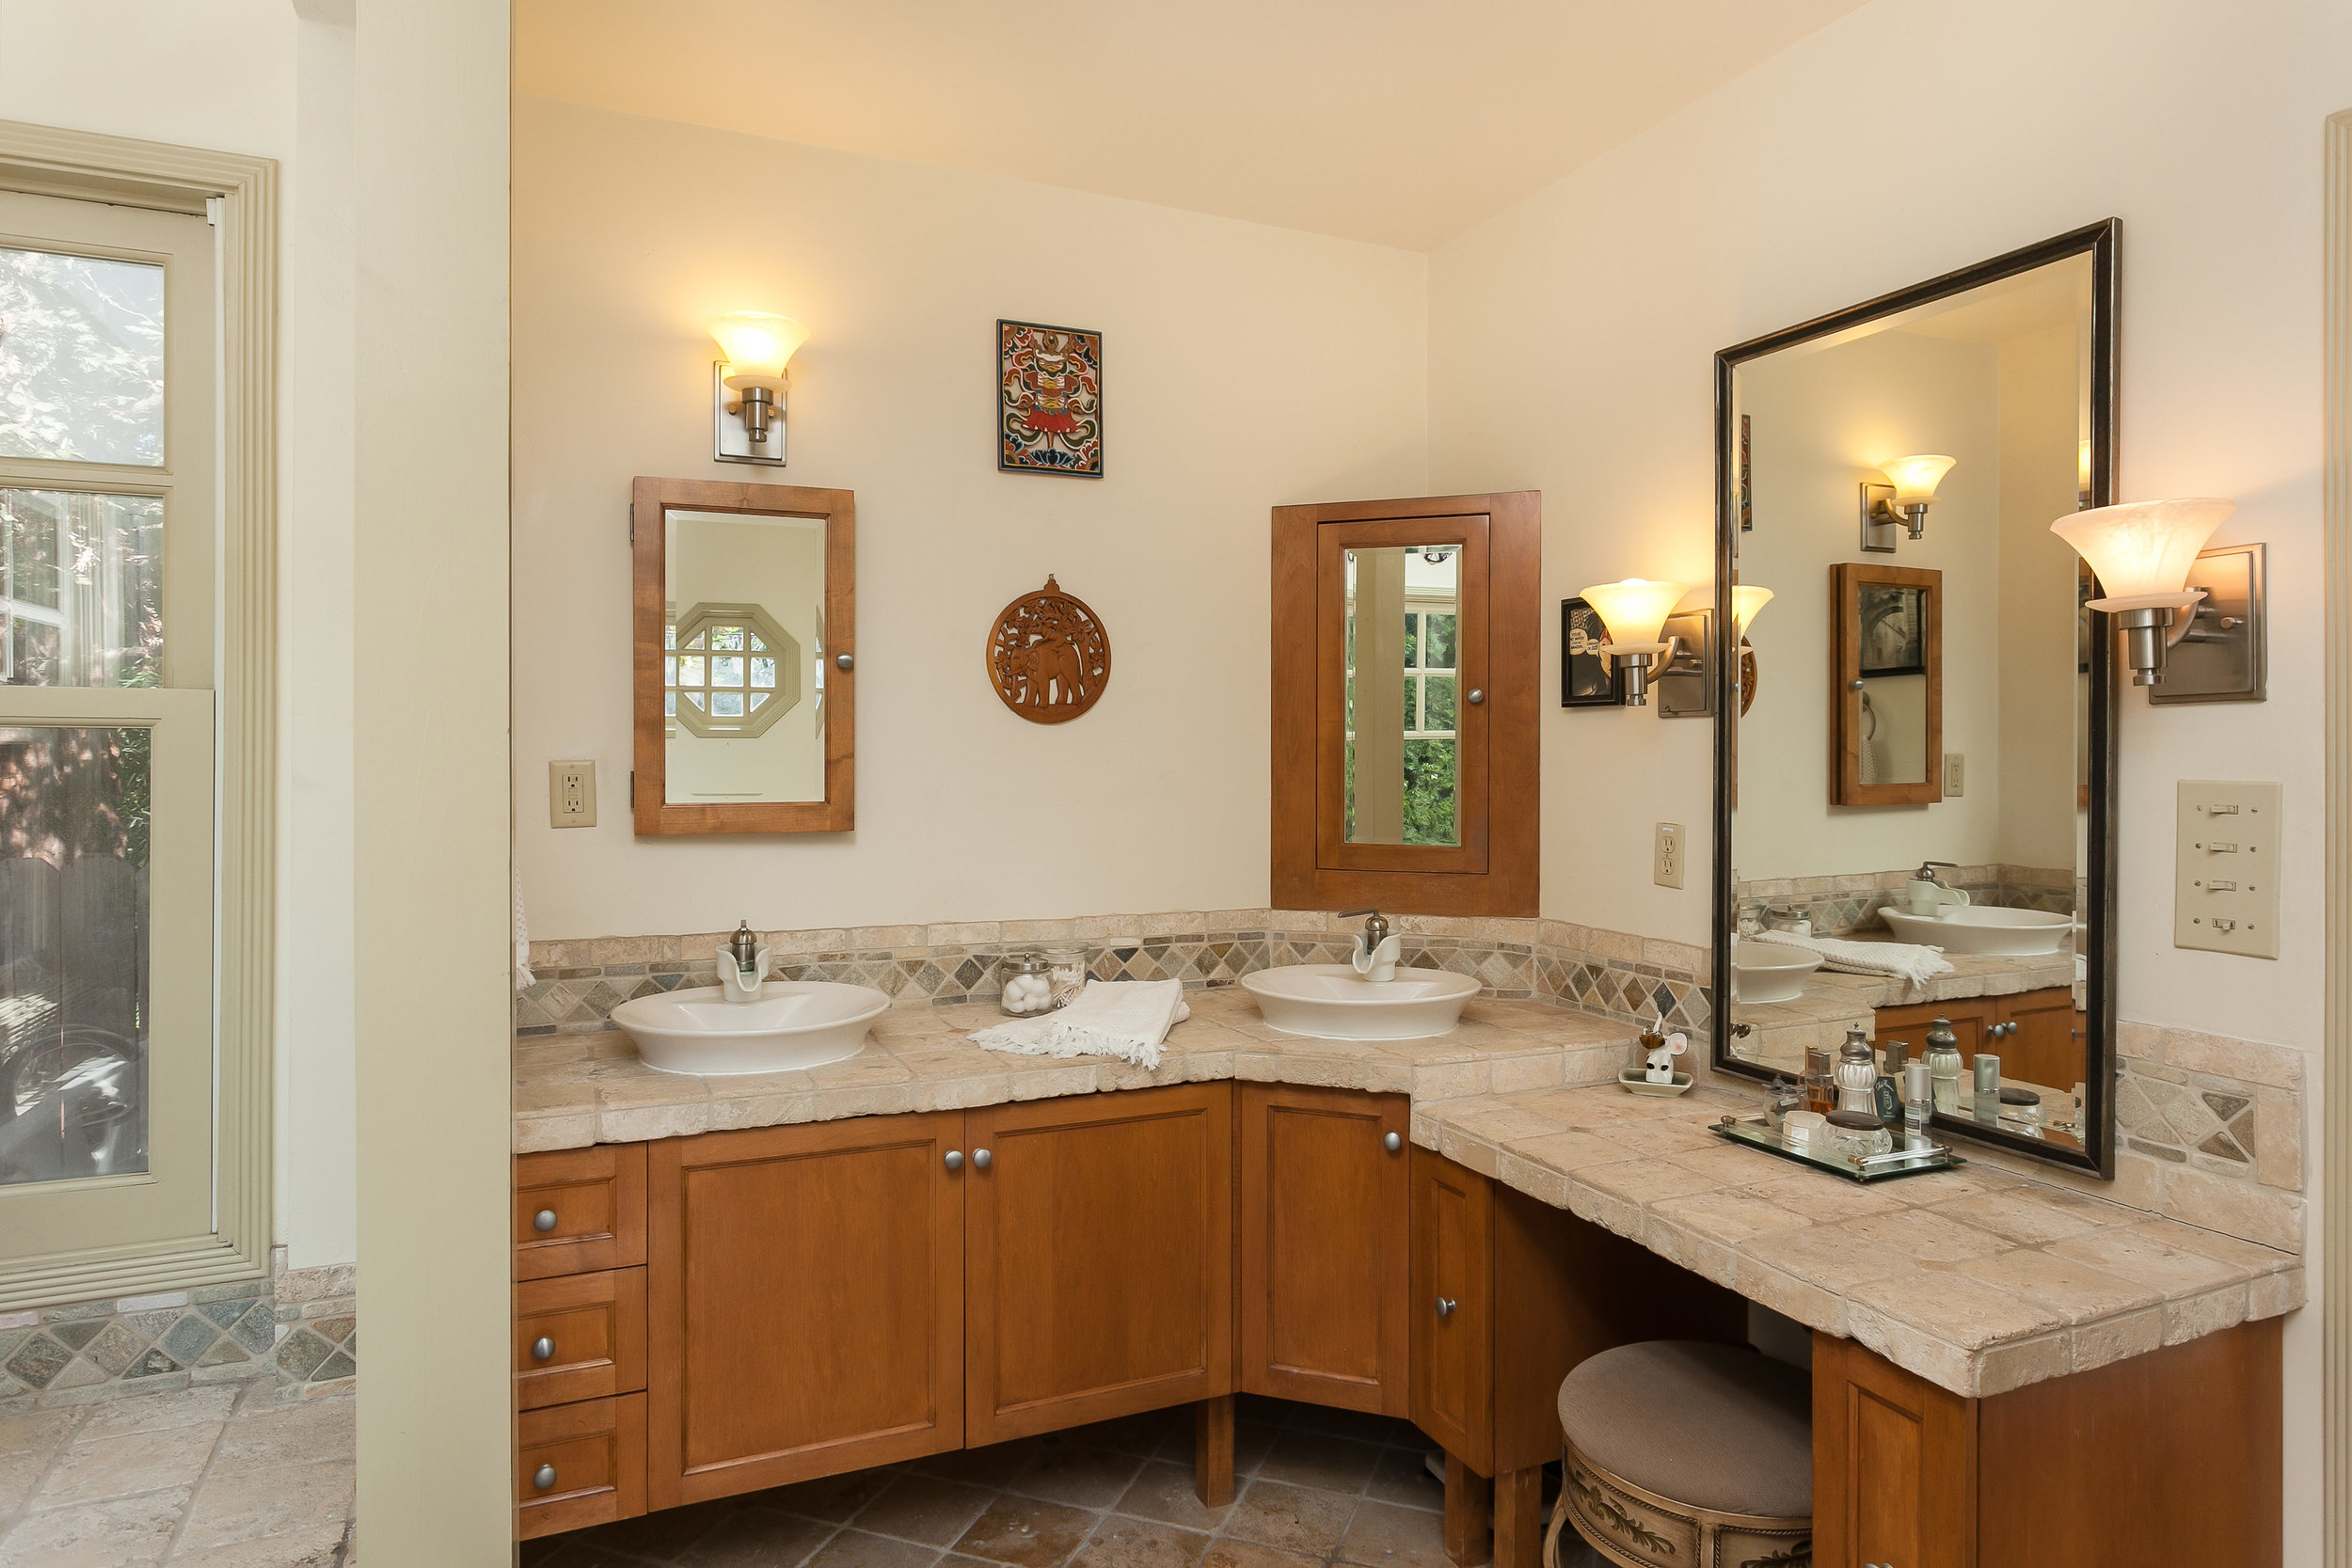 4107 Goodland Ave Studio City-print-021-27-Master Bathroom-3862x2575-300dpi.jpg